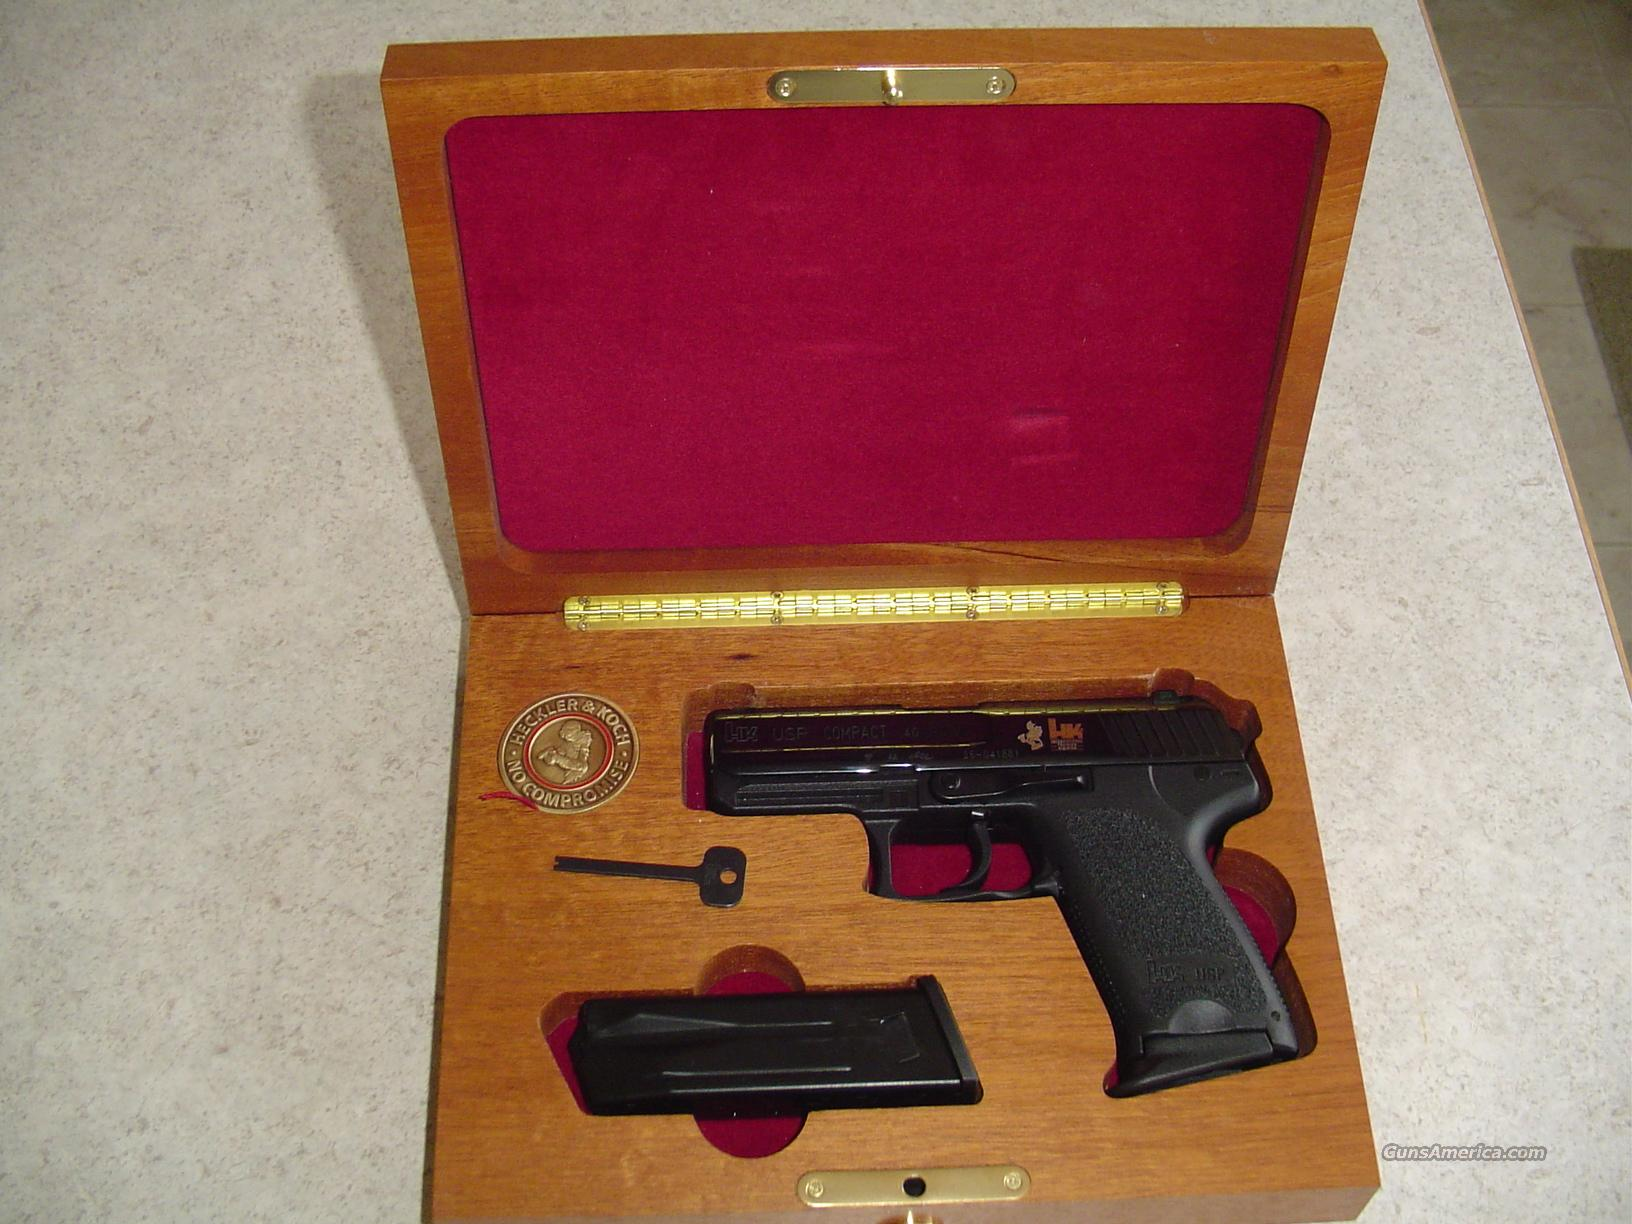 VERY RARE--NEW IN BOX--HK INTERNATIONAL TRAINING DIVISION 40 USP COMPACT IN WOOD PRESENTATION BOX!!  Guns > Pistols > Heckler & Koch Pistols > Polymer Frame